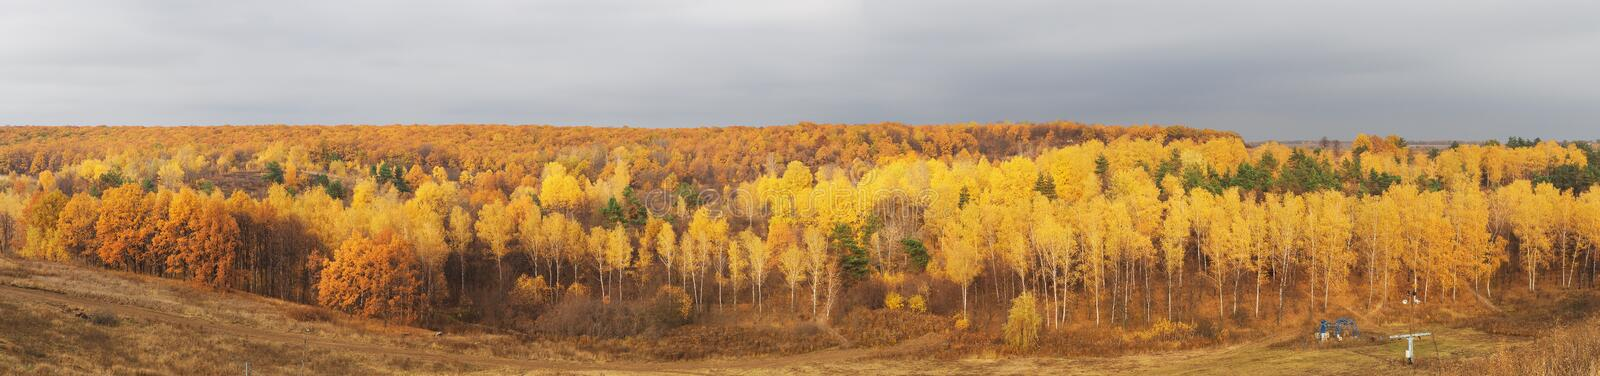 Autumn forest october panorama royalty free stock photo